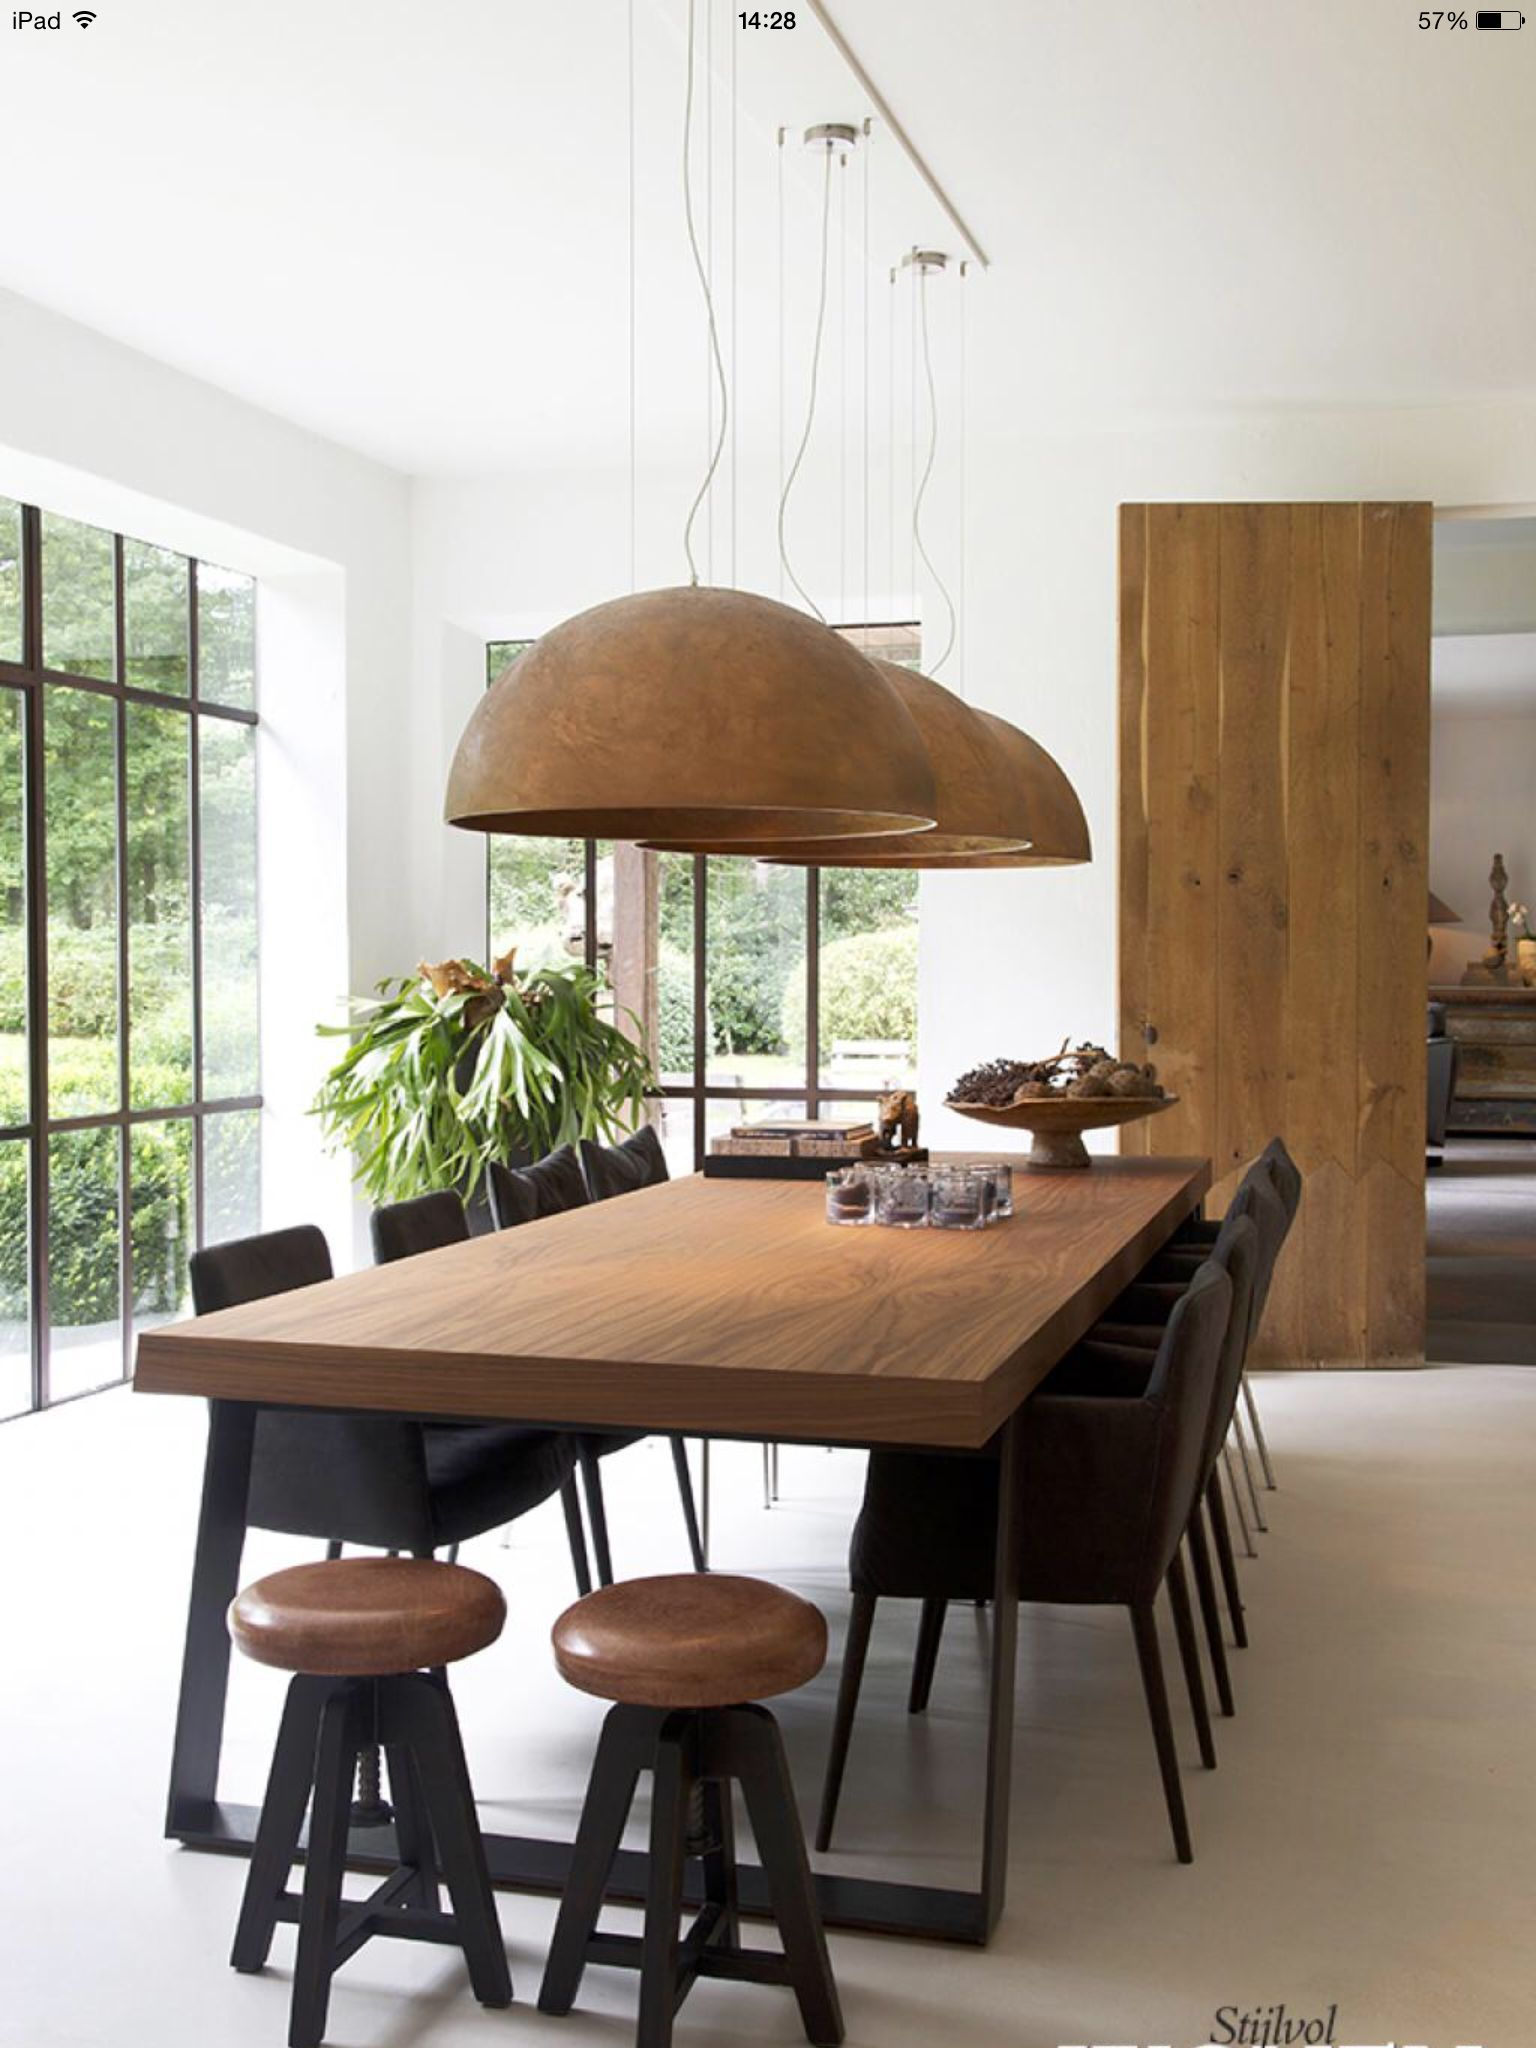 Brown Design Group | Interior Design | Los Angeles + Santa Barbara ·  Interior Design Los AngelesModern Kitchen TablesDining Room ...